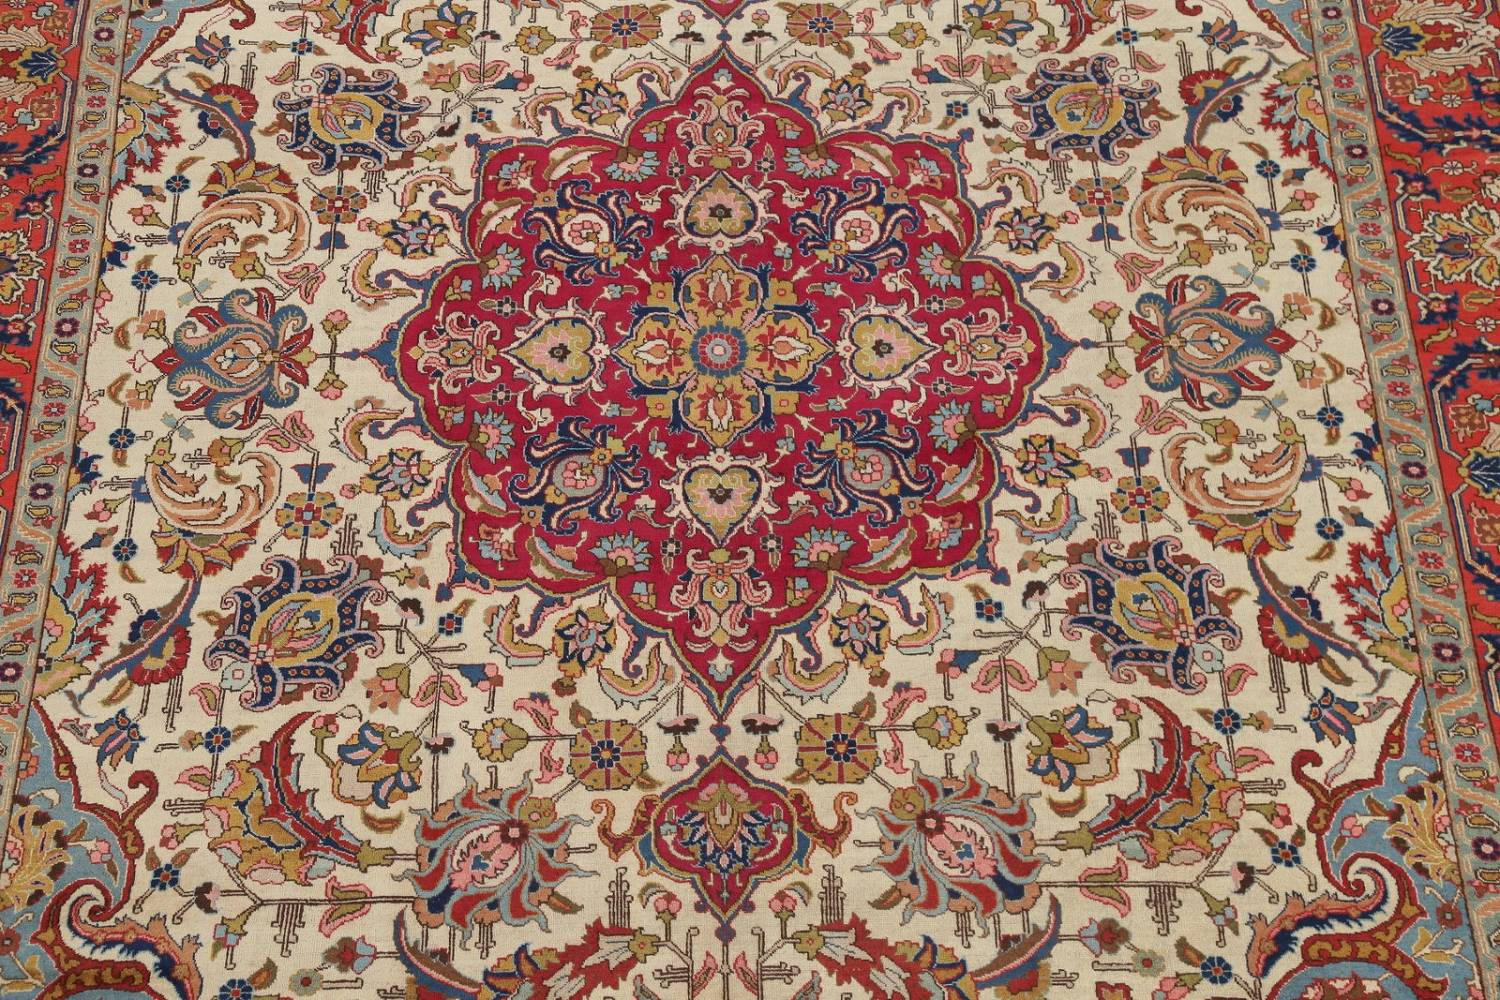 Antique Vegetable Dye Tabriz Persian Hand-Knotted Area Rug Wool 10x13 image 3